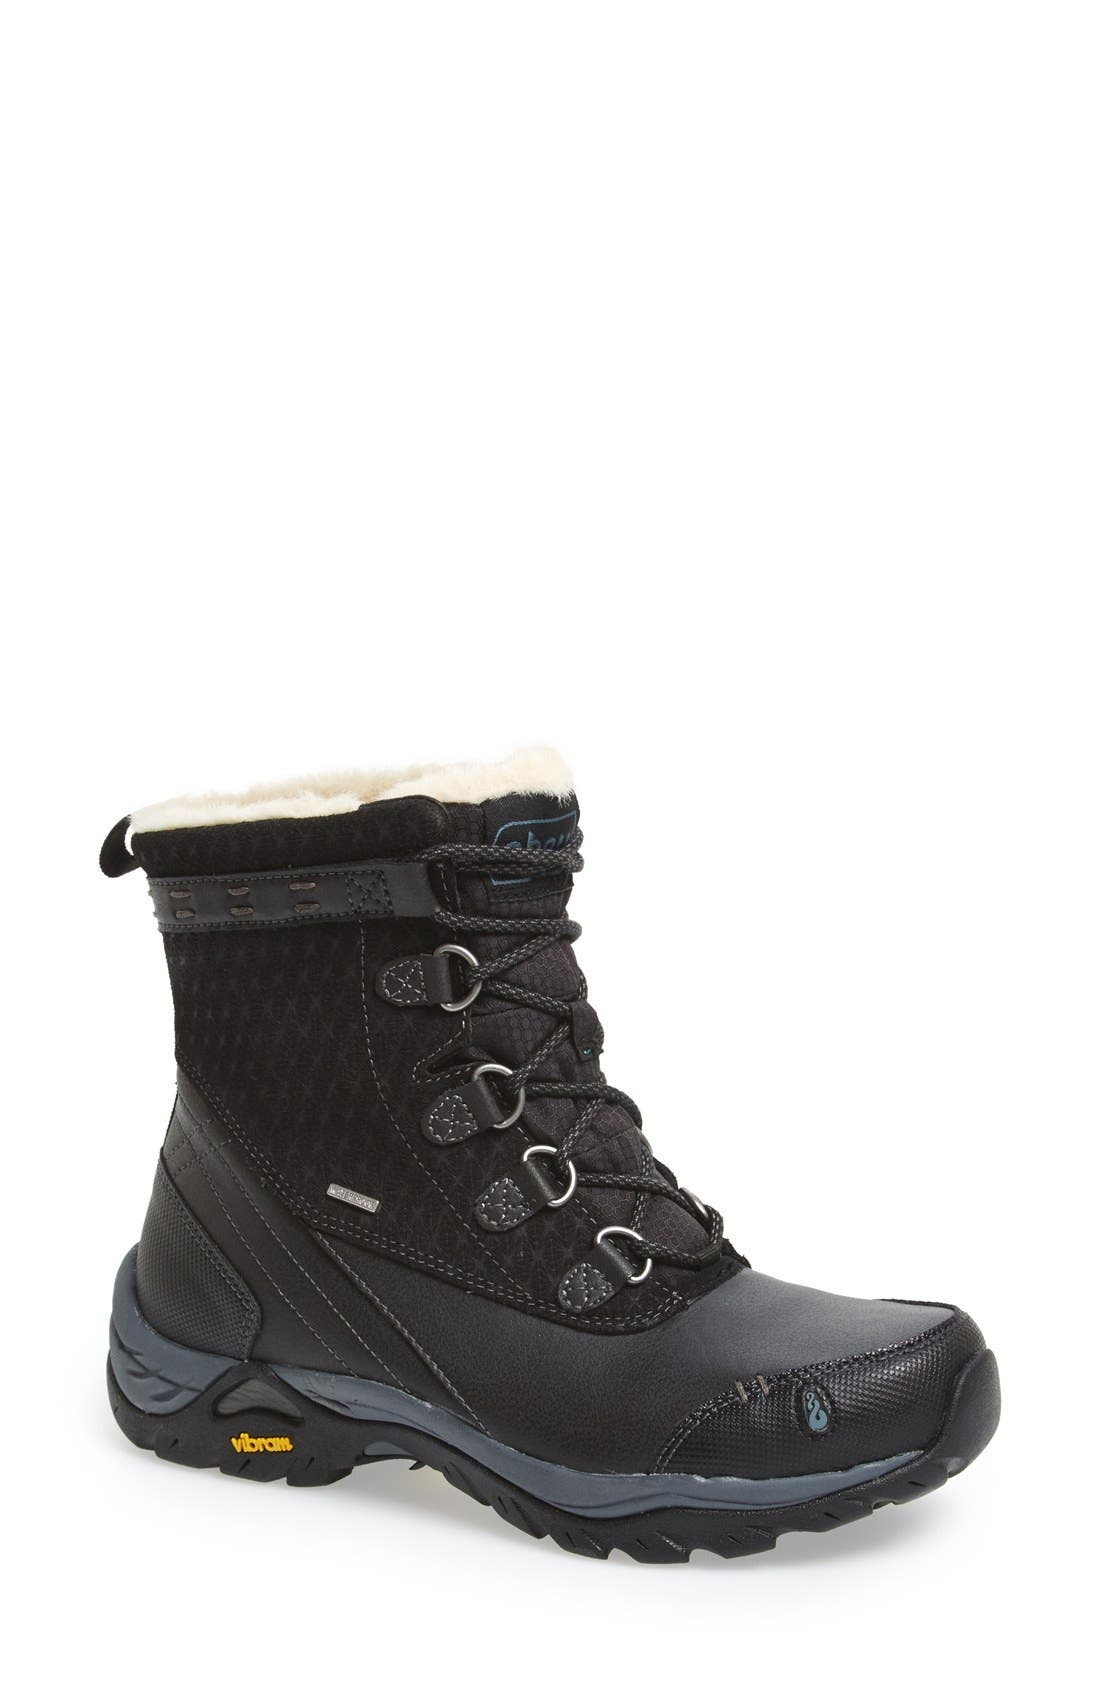 'Twain Harte' Insulated Waterproof Boot,                             Main thumbnail 1, color,                             001